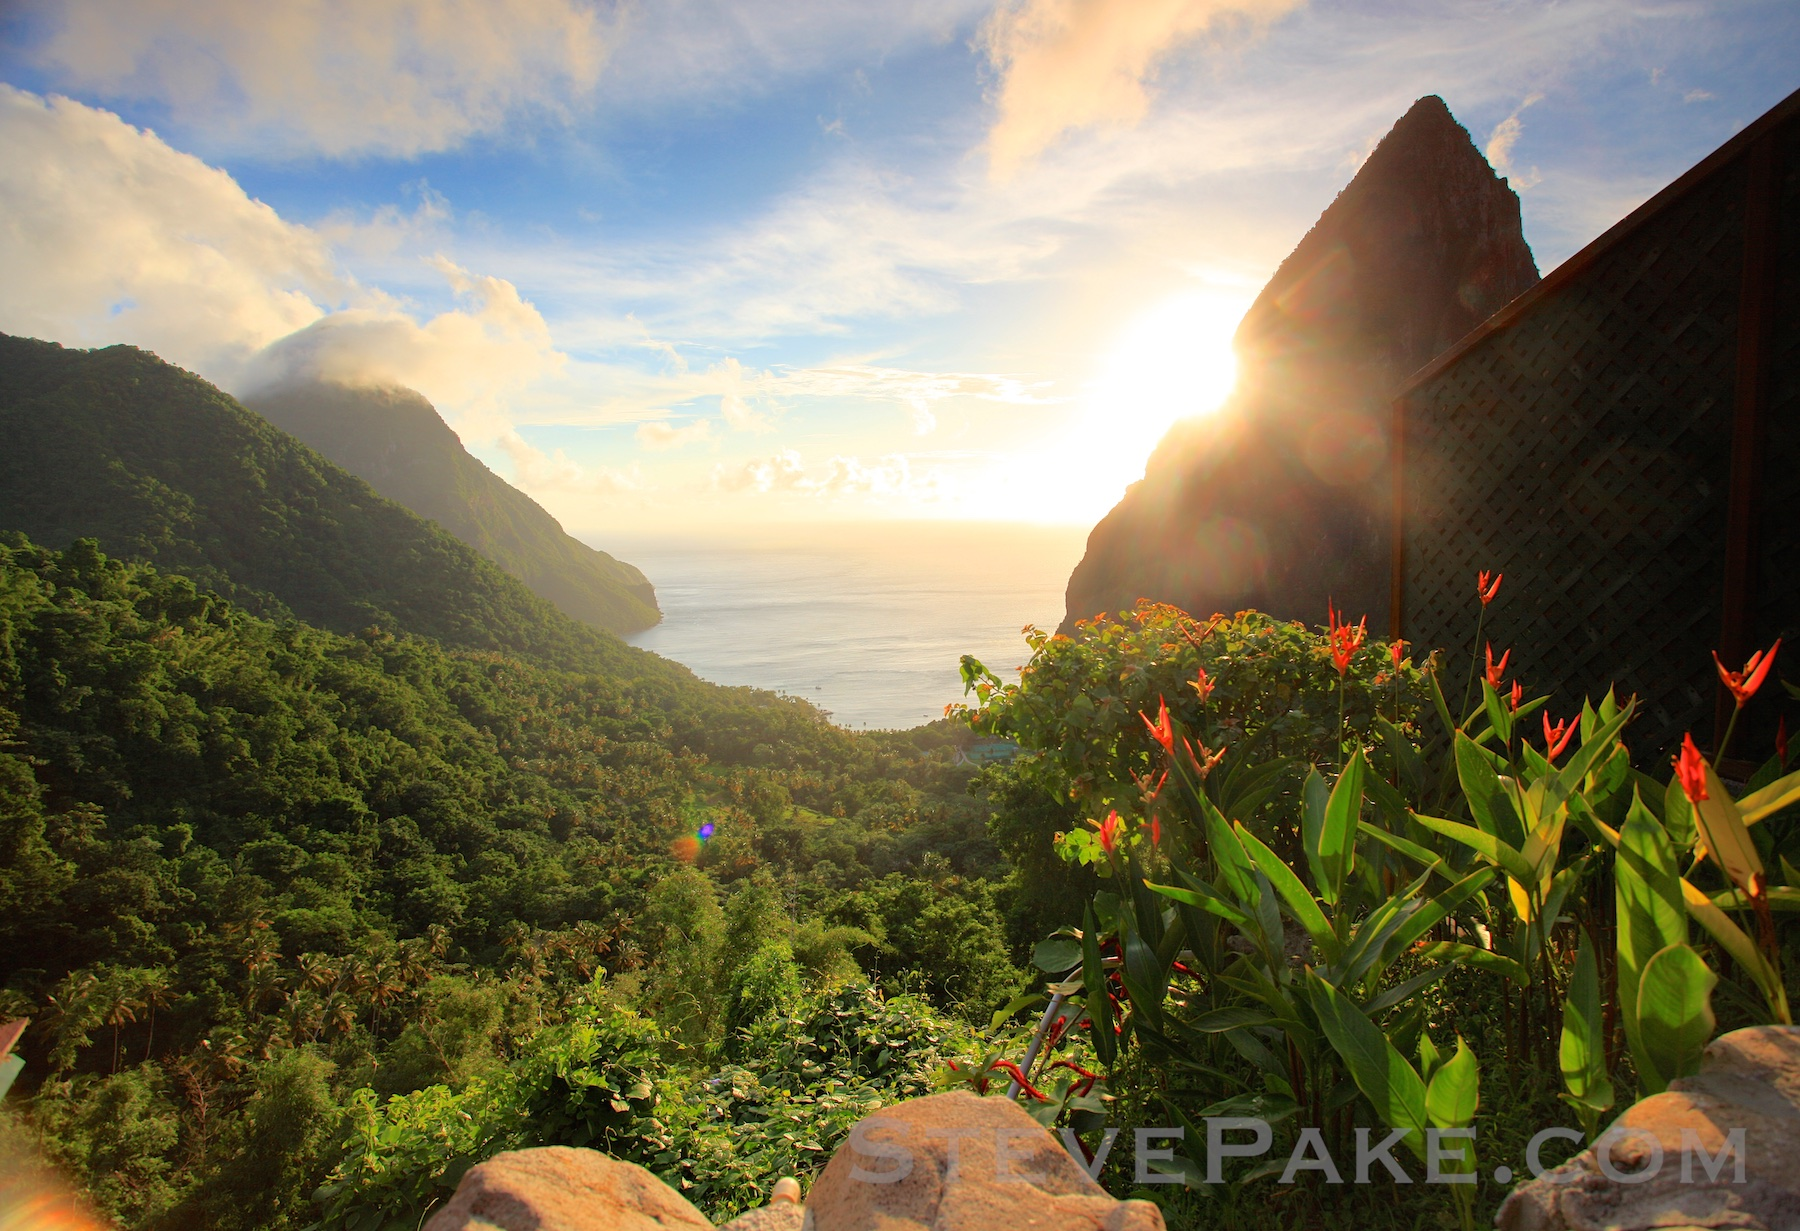 The famous Pitons in St Lucia, from the Ladera Resort. Lighting, Location, and Perspective are certainly in play here as well! The more things that come together in a photo, the more amazing it will be!